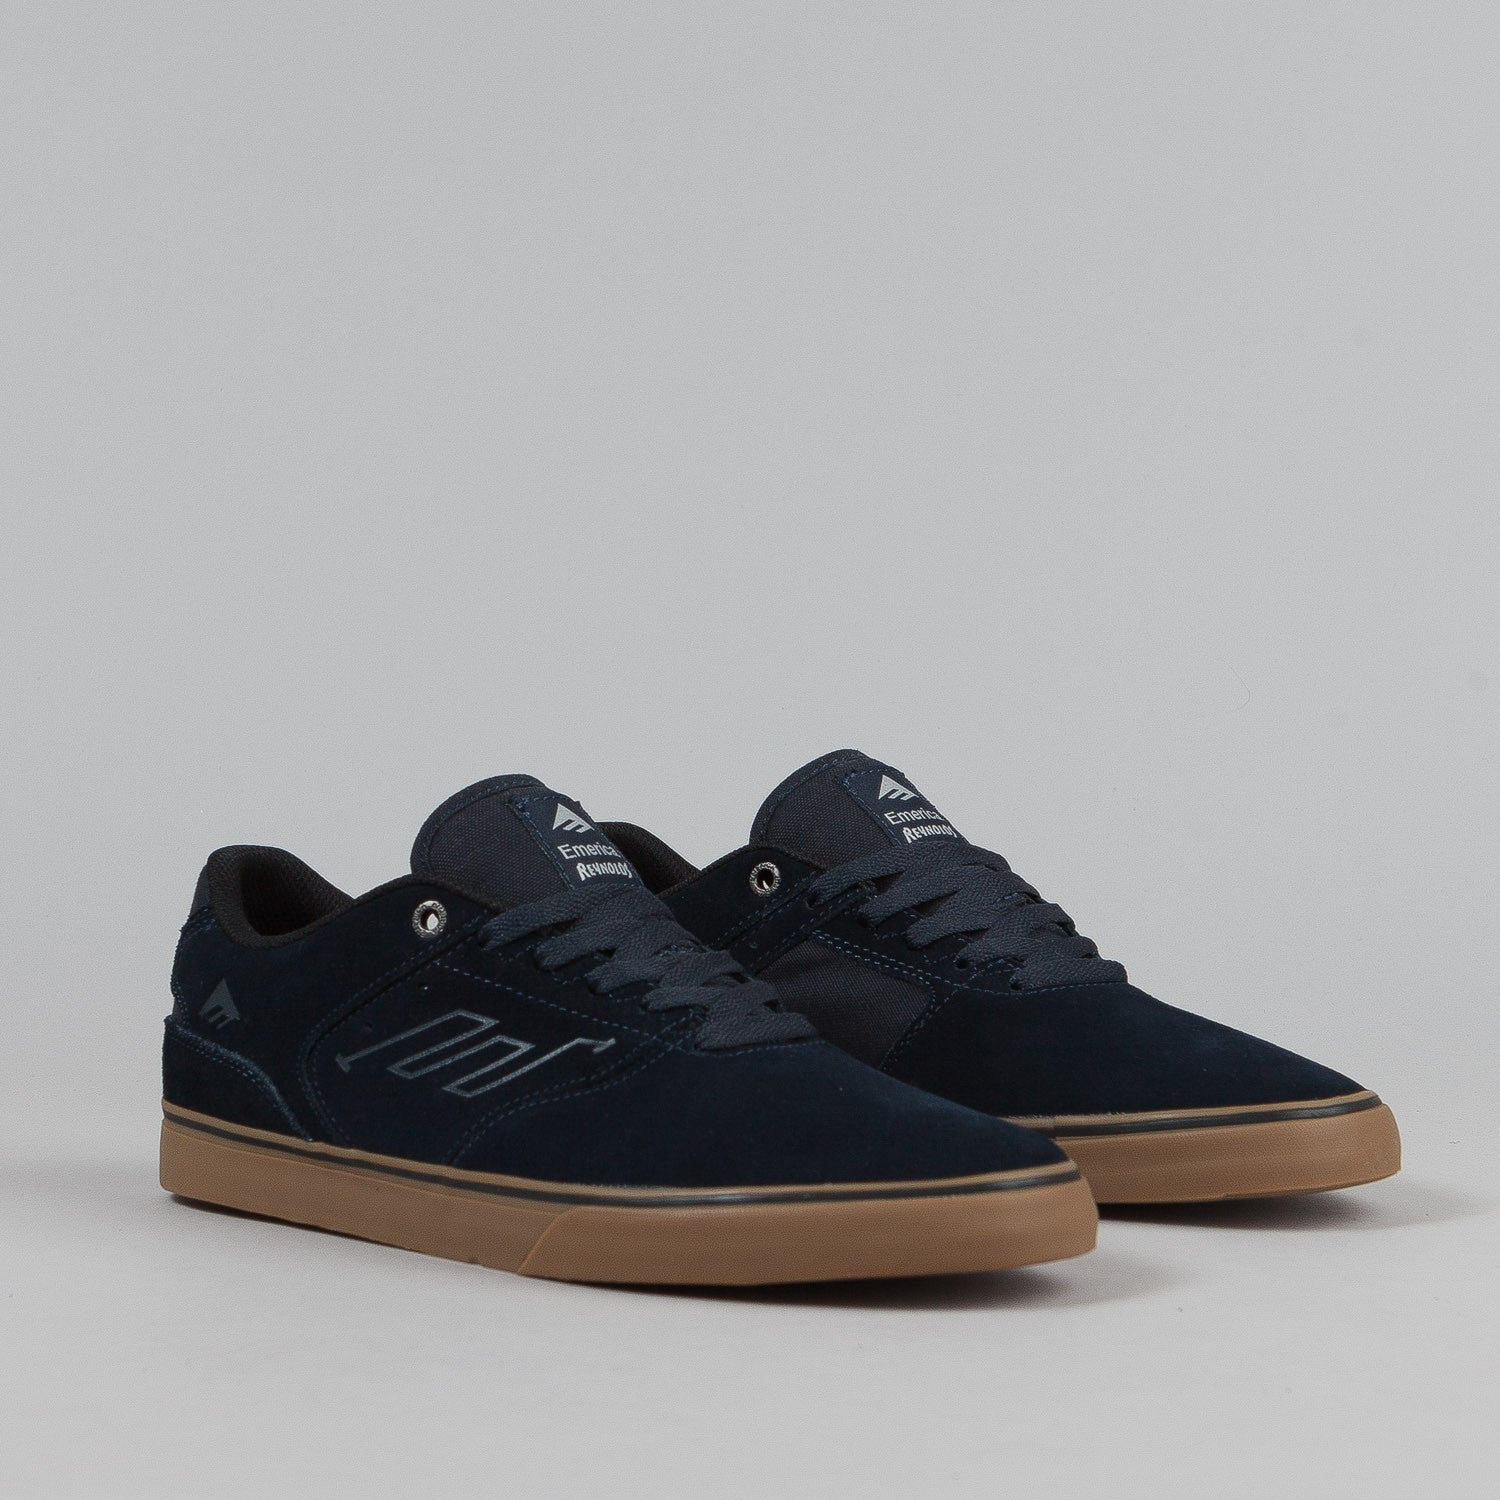 Emerica The Reynolds Low Vulc Shoes - Navy / Gum